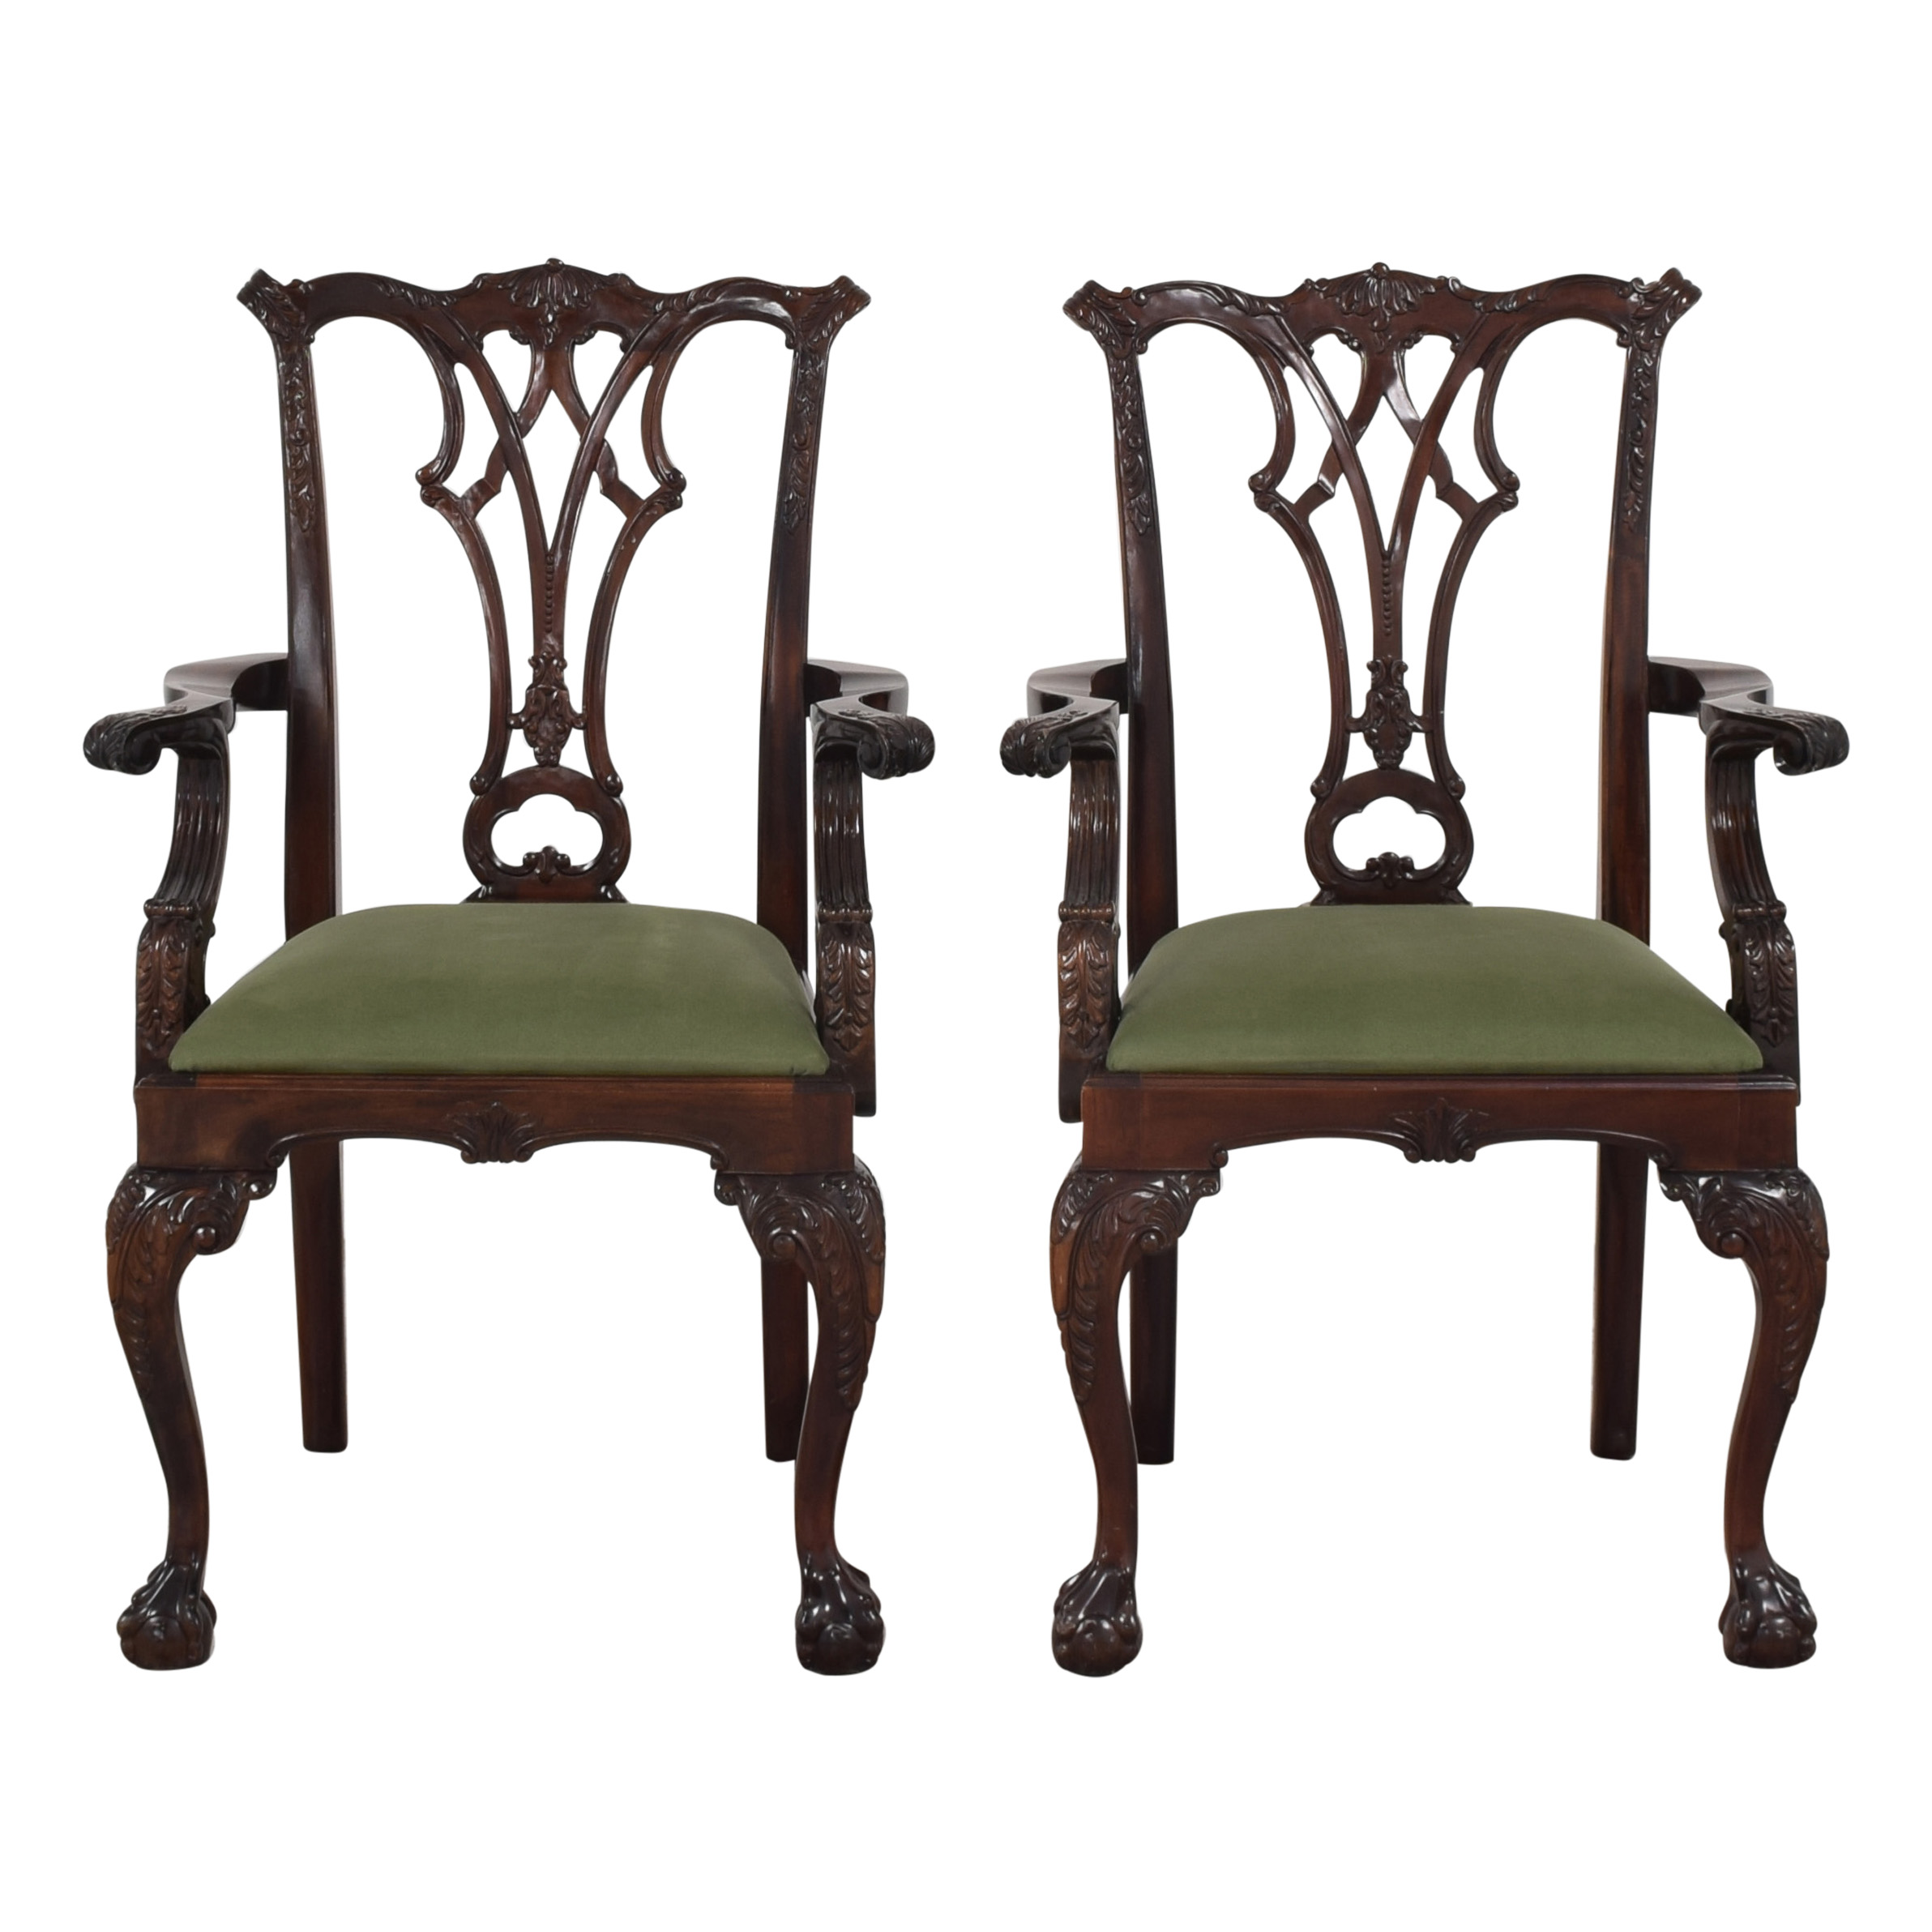 Greenbaum Interiors Queen Anne Style Dining Arm Chairs Chairs